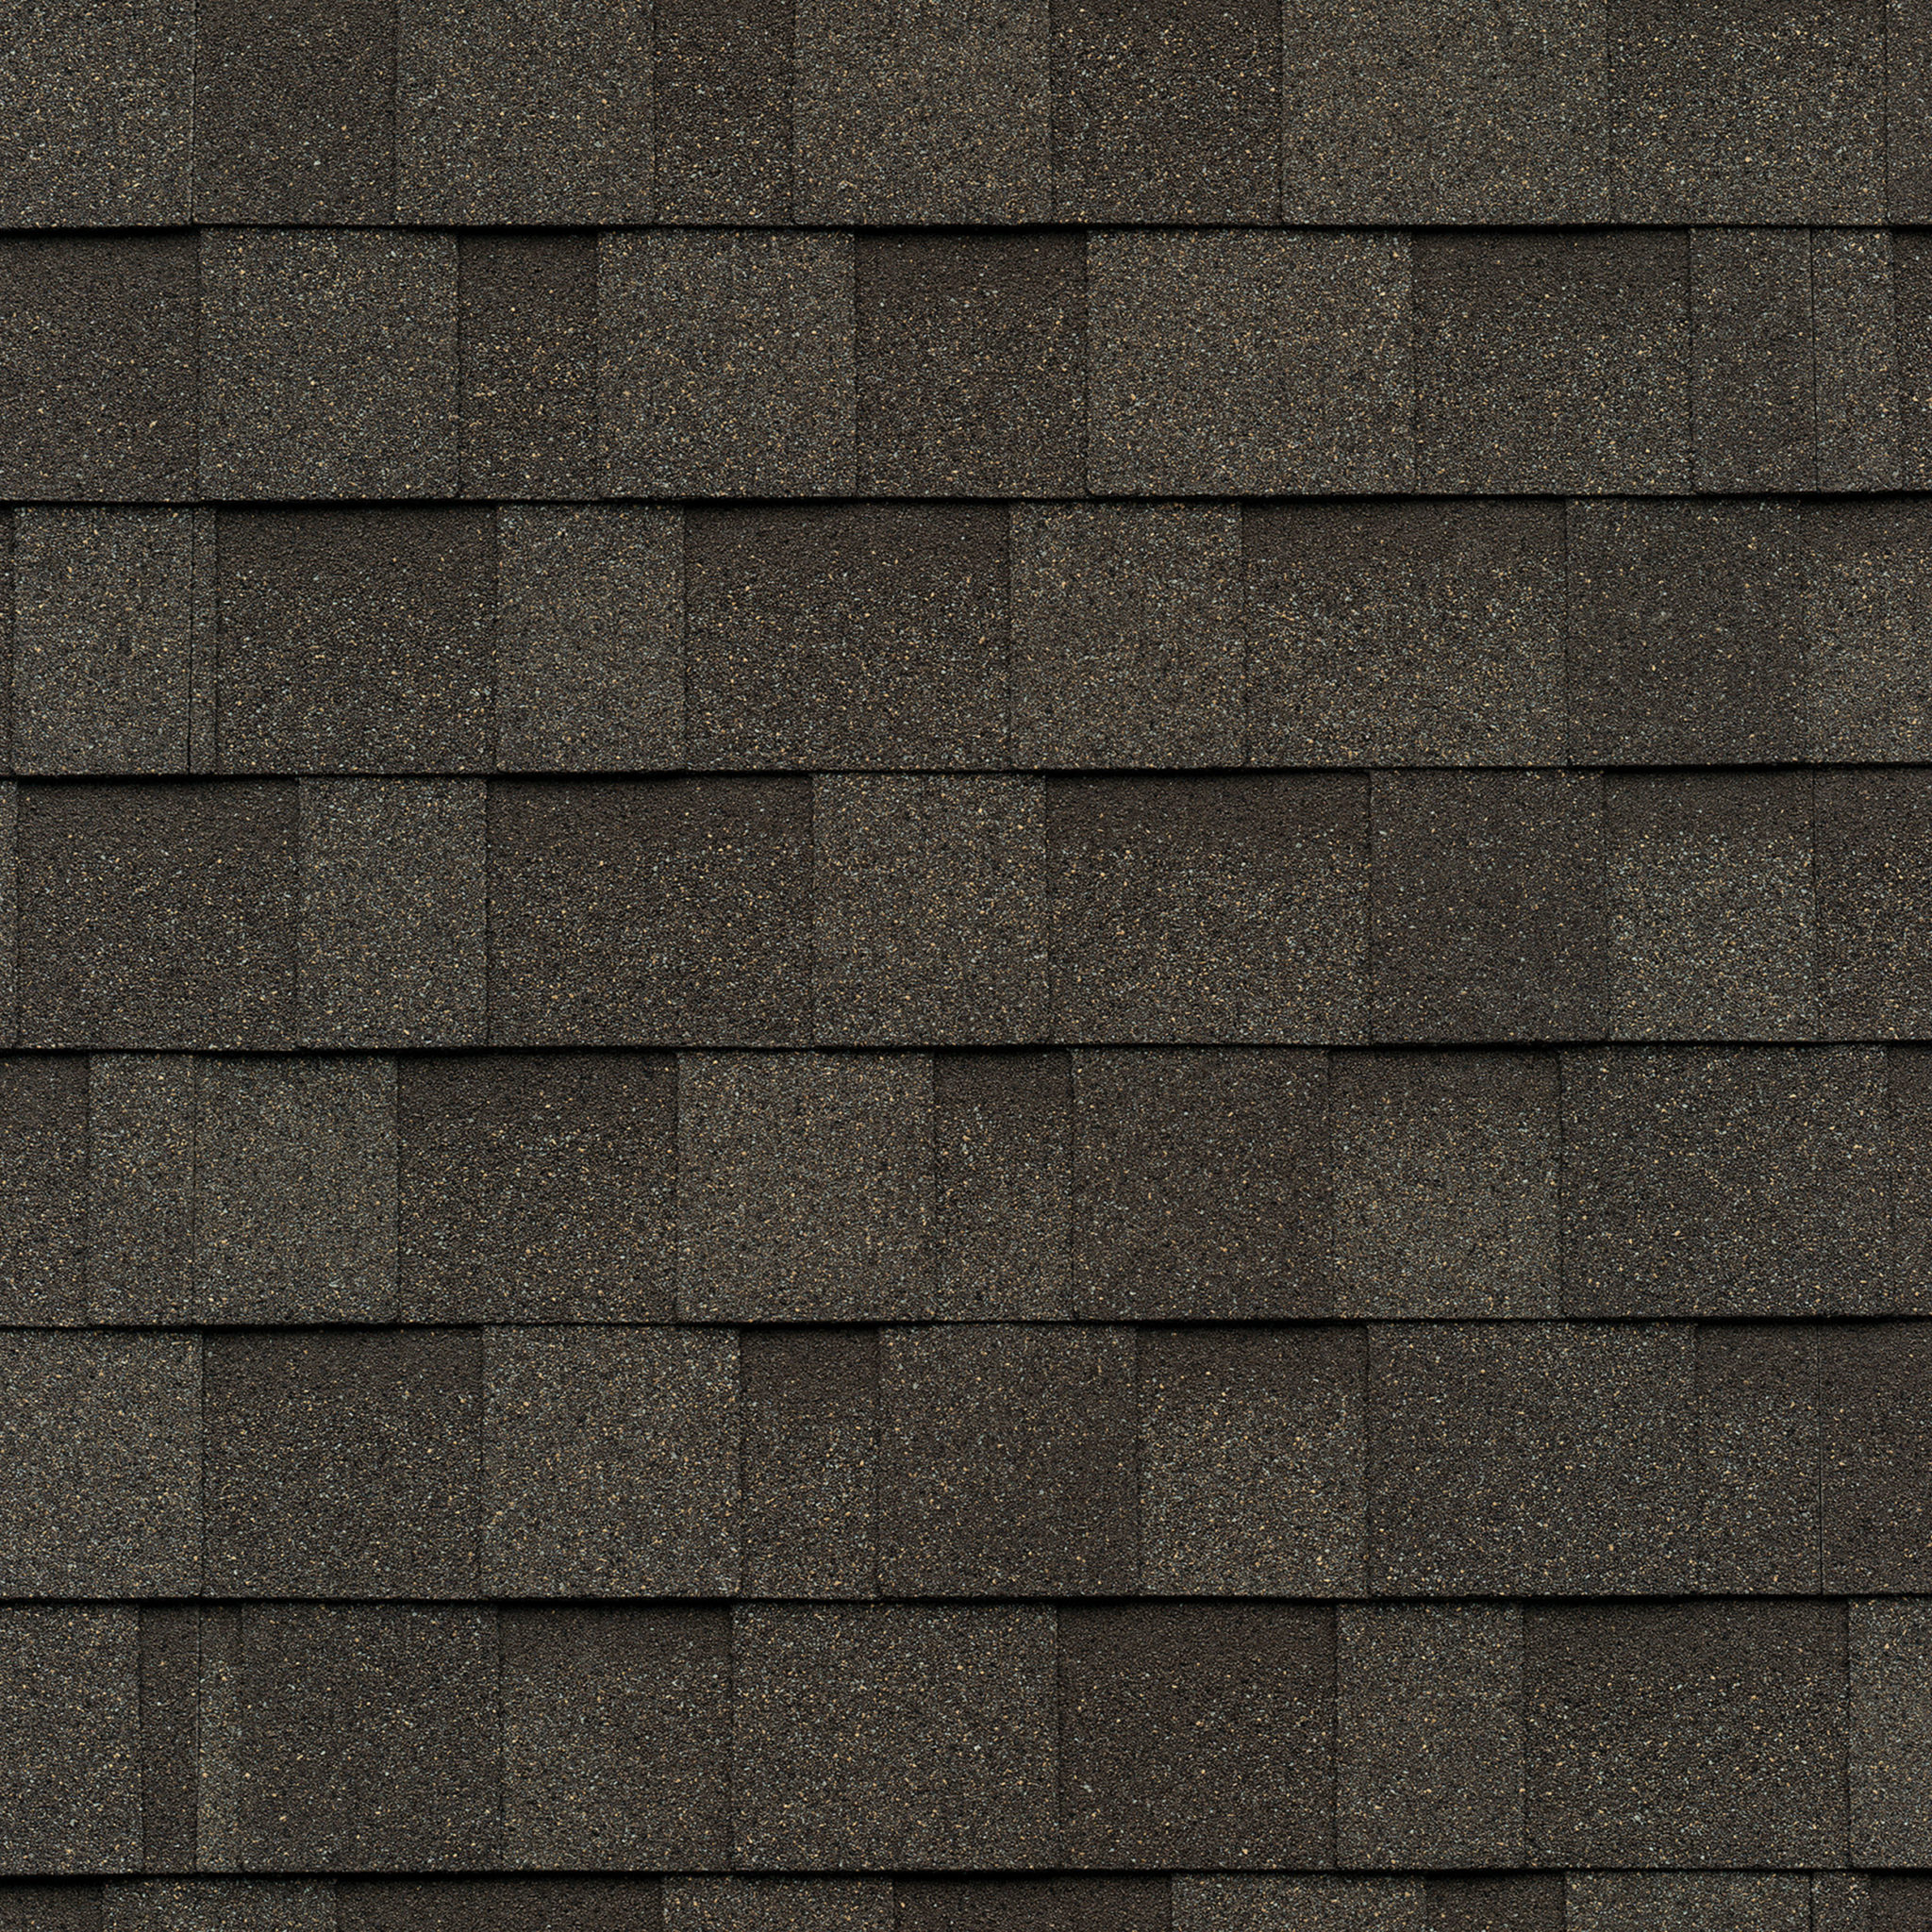 Shingles-Cambridge-Weatherwood